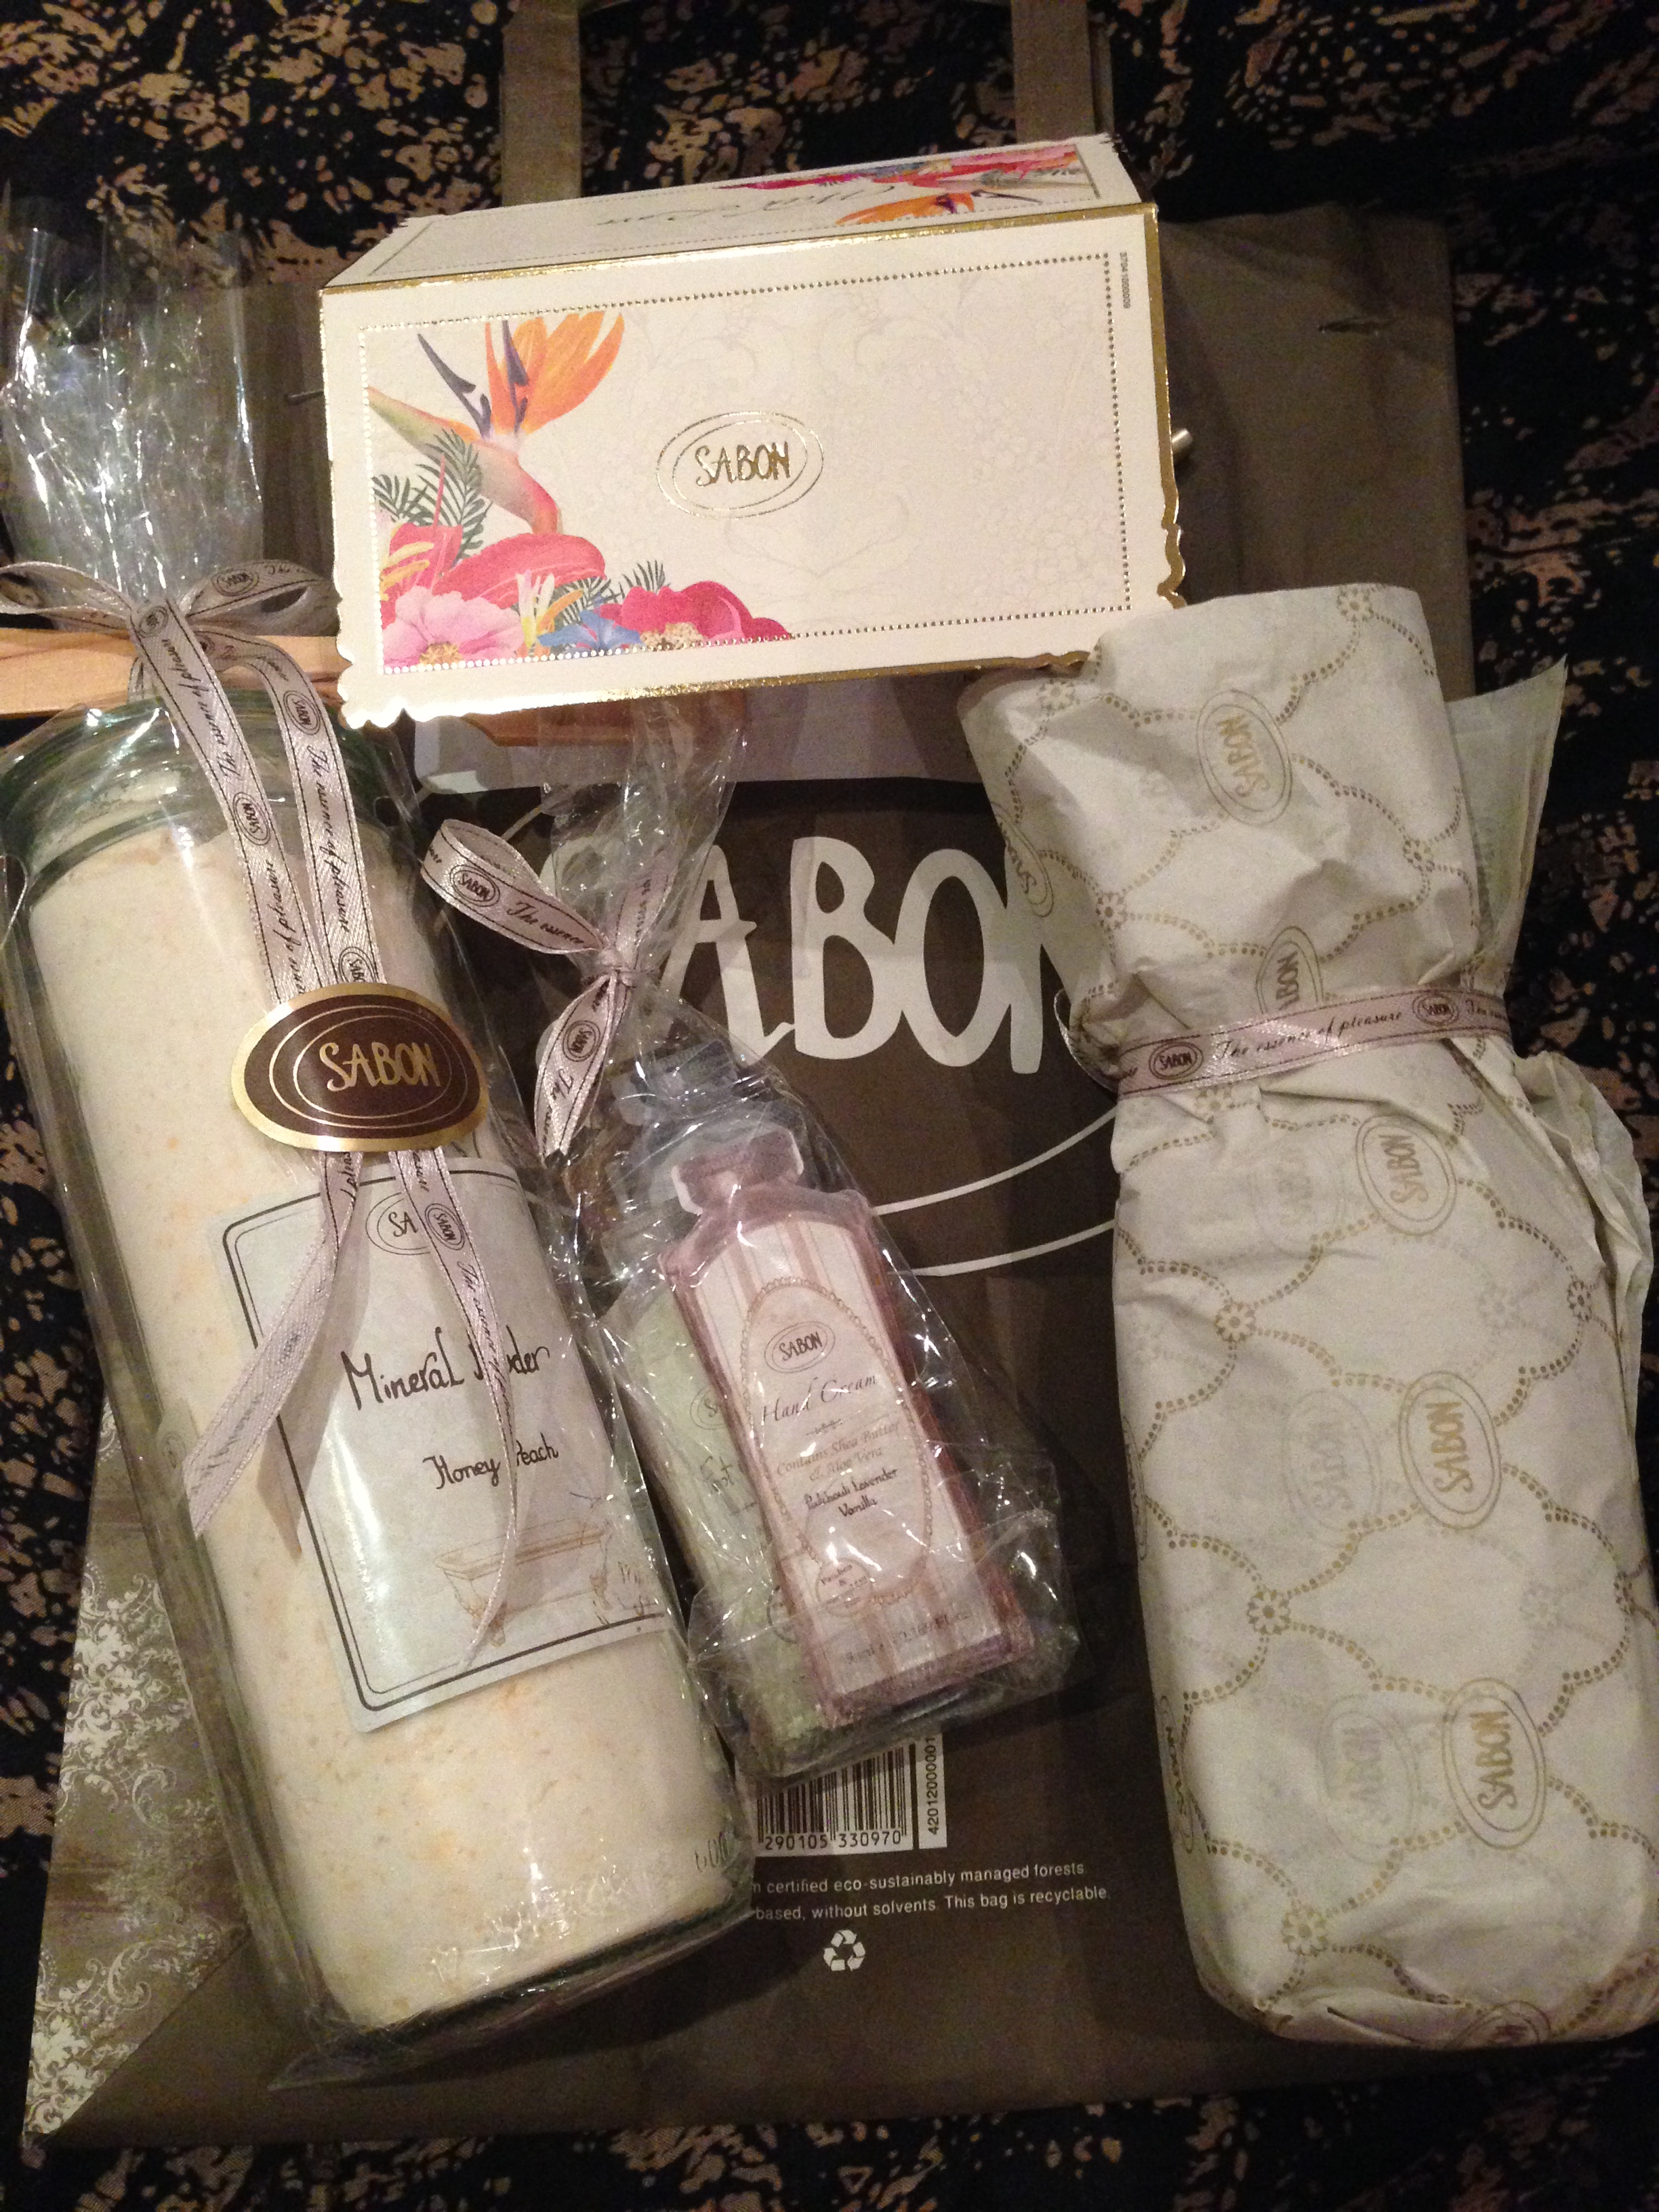 Sabon Launches in UK